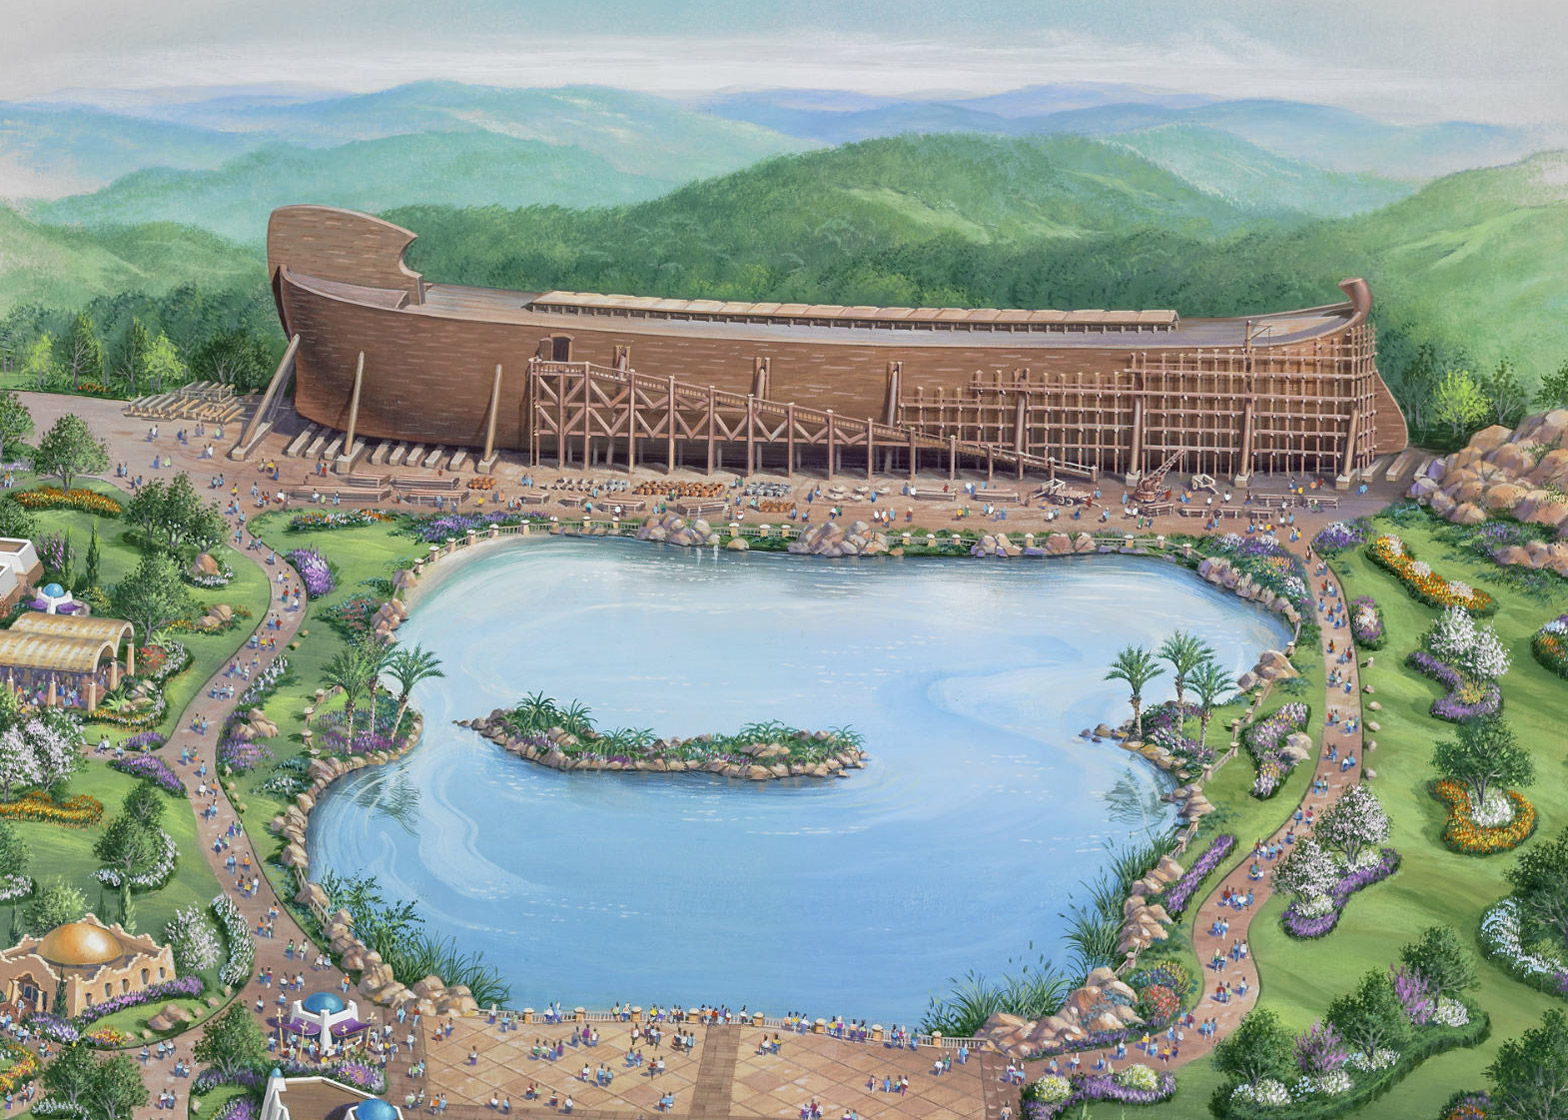 Ark Encounter by Troyer Group